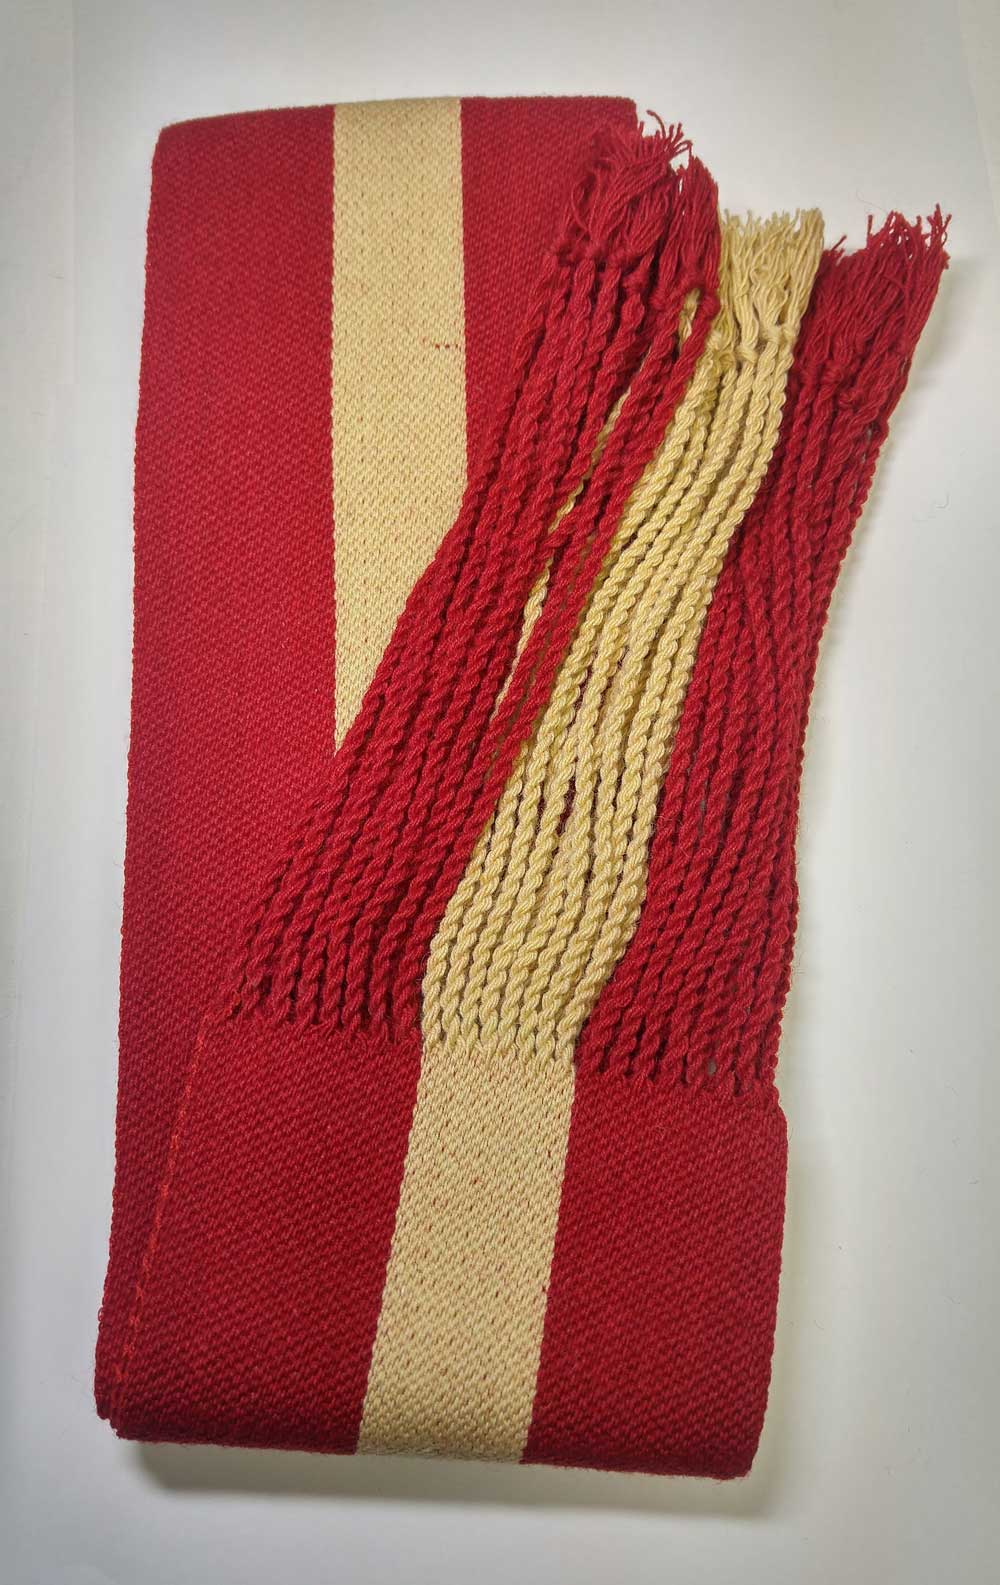 Sash: Sgt., Red with Buff Stripe, 18/19C